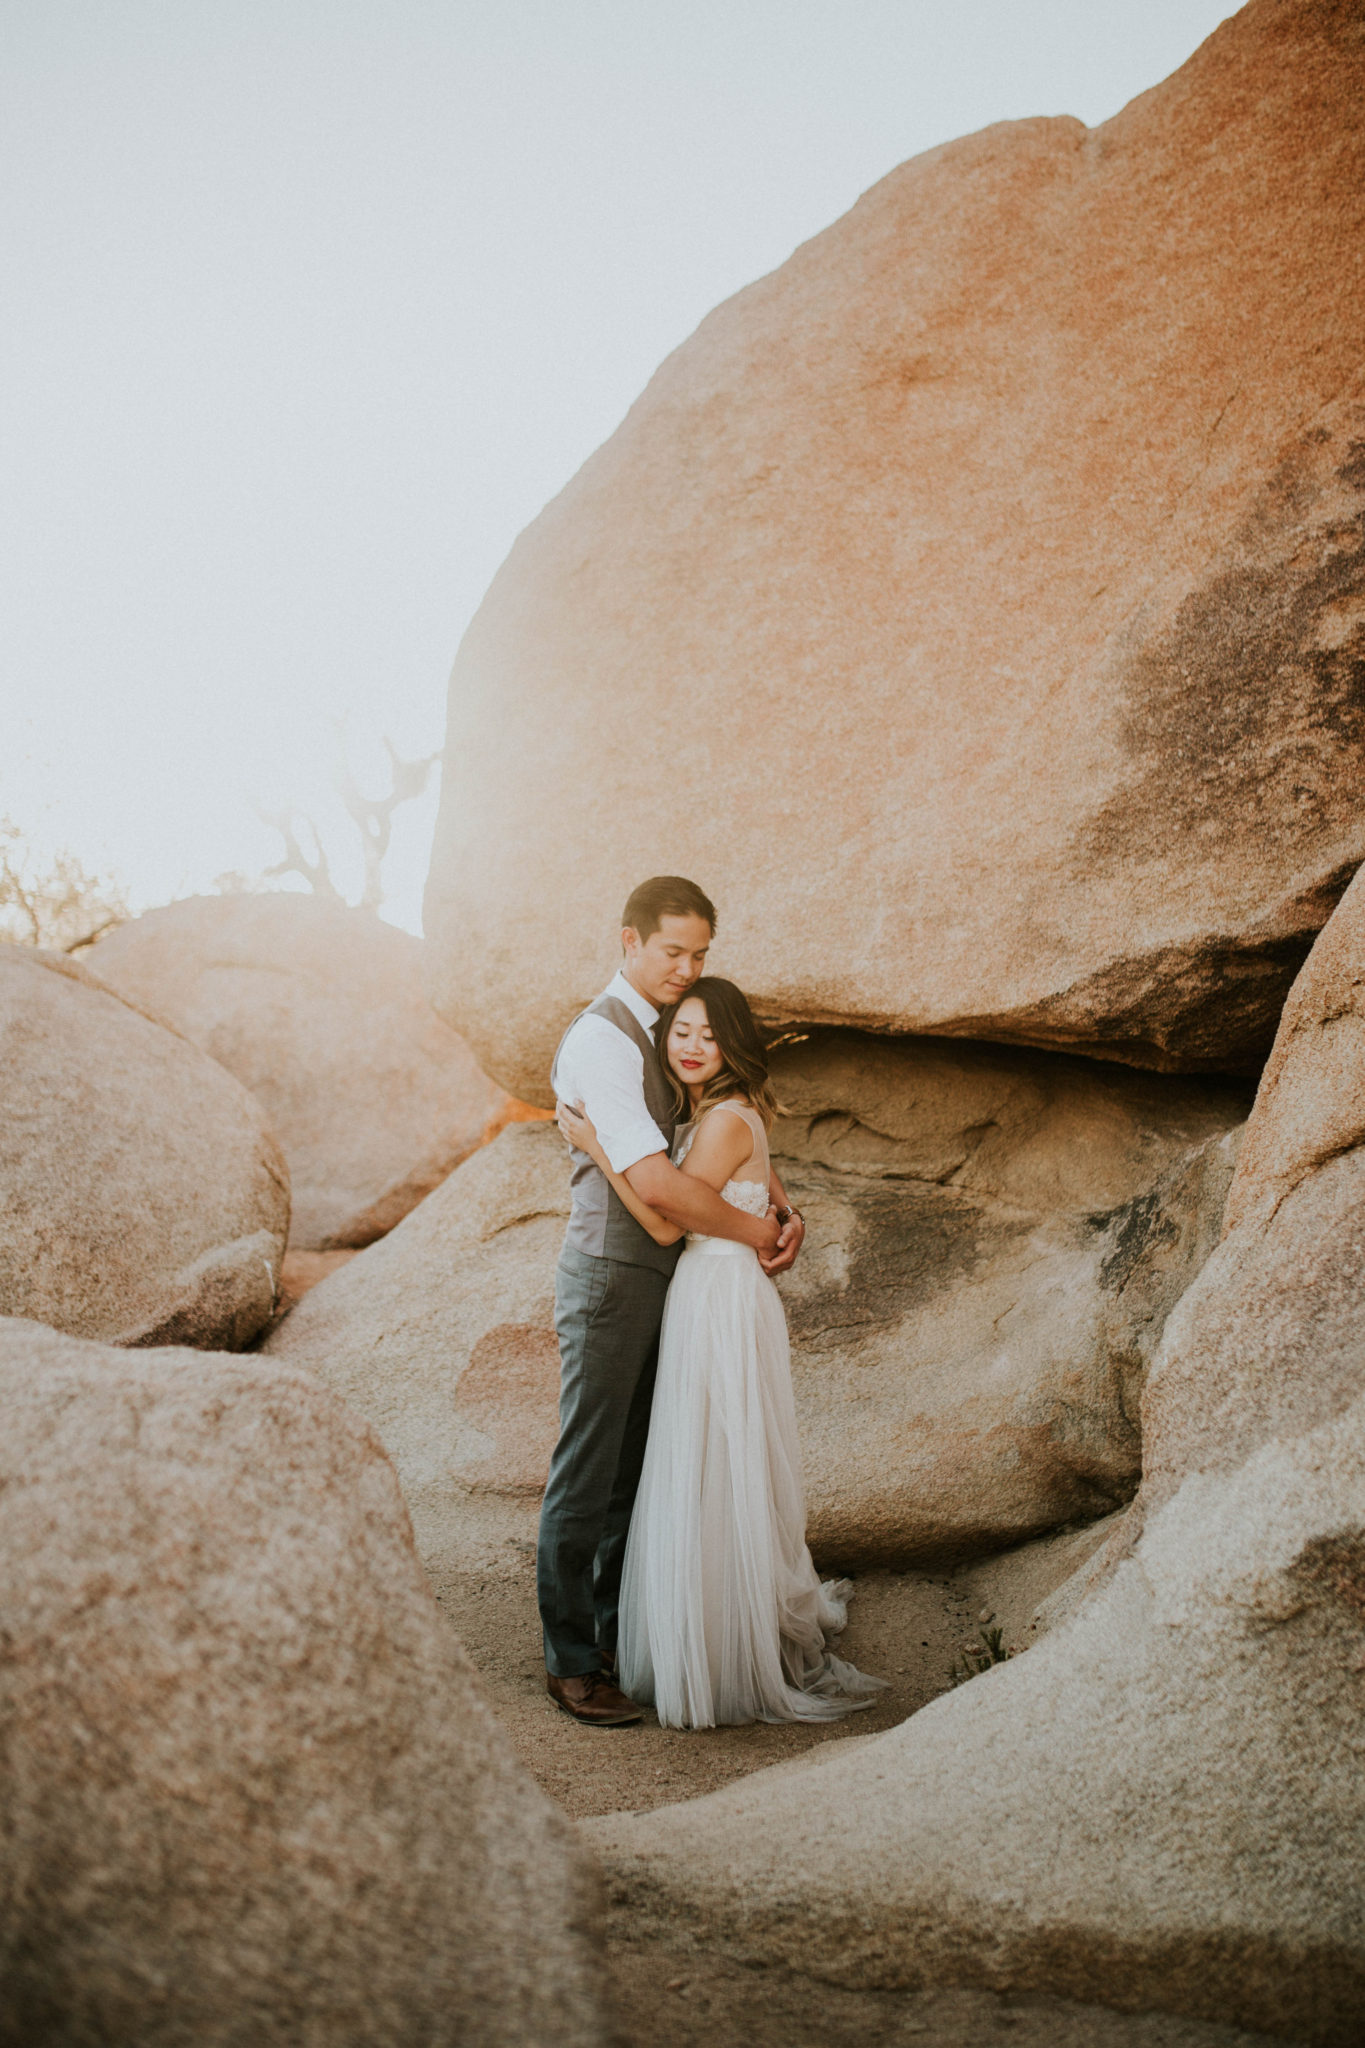 Mandy & Joey Joshua Tree Elopement California Wedding Photographer-189